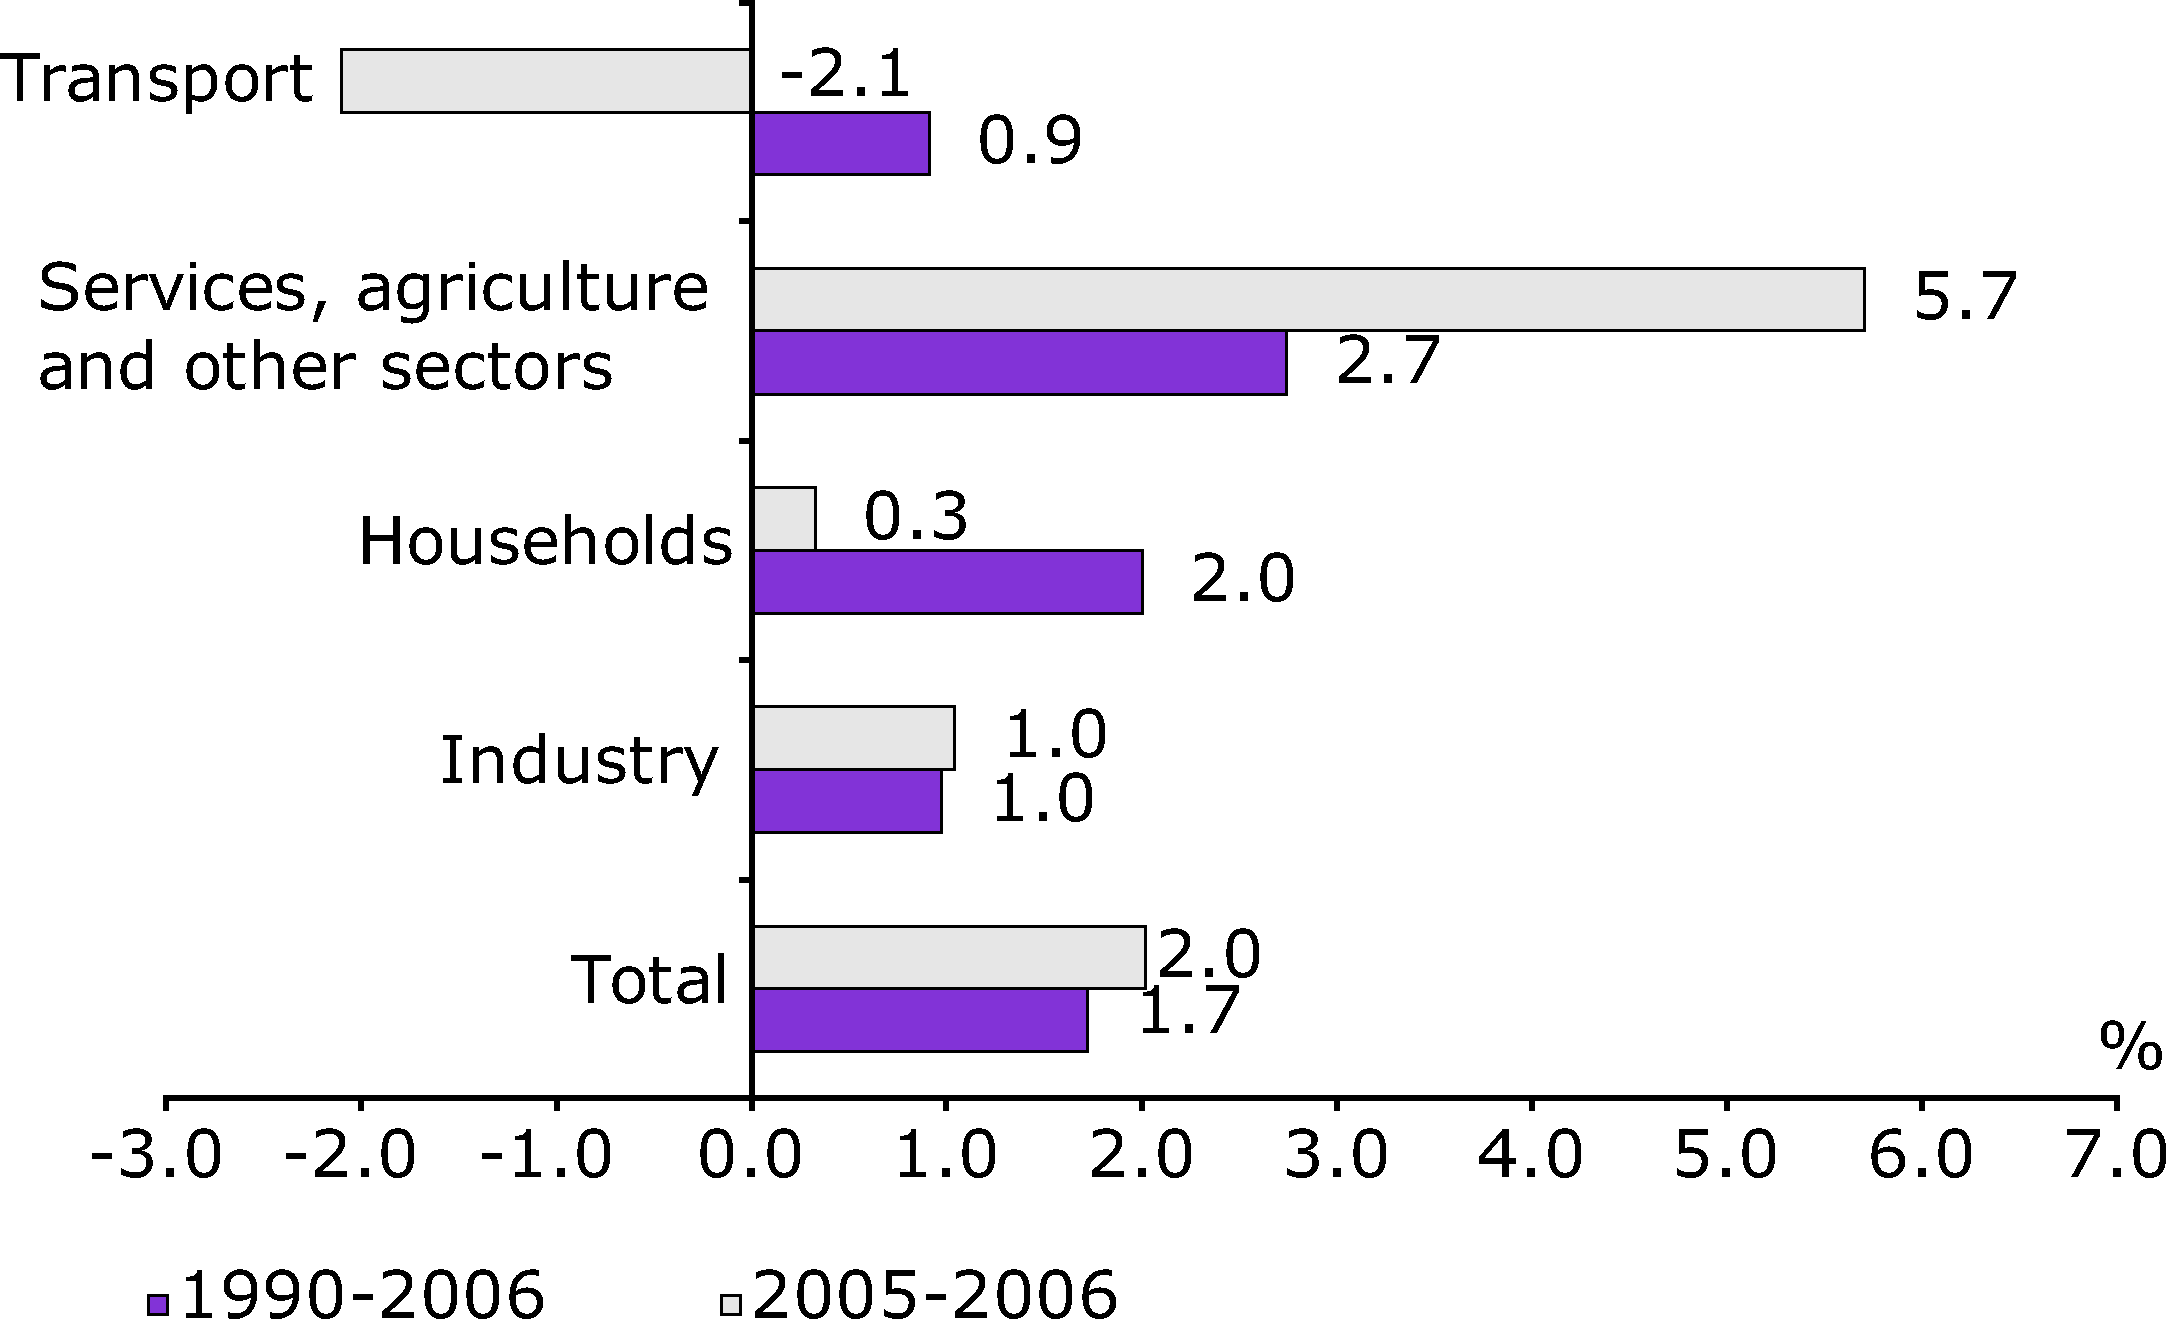 Average annual growth rate in electricity consumption by sector, 1990-2006 and 2005-2006,  EU-27